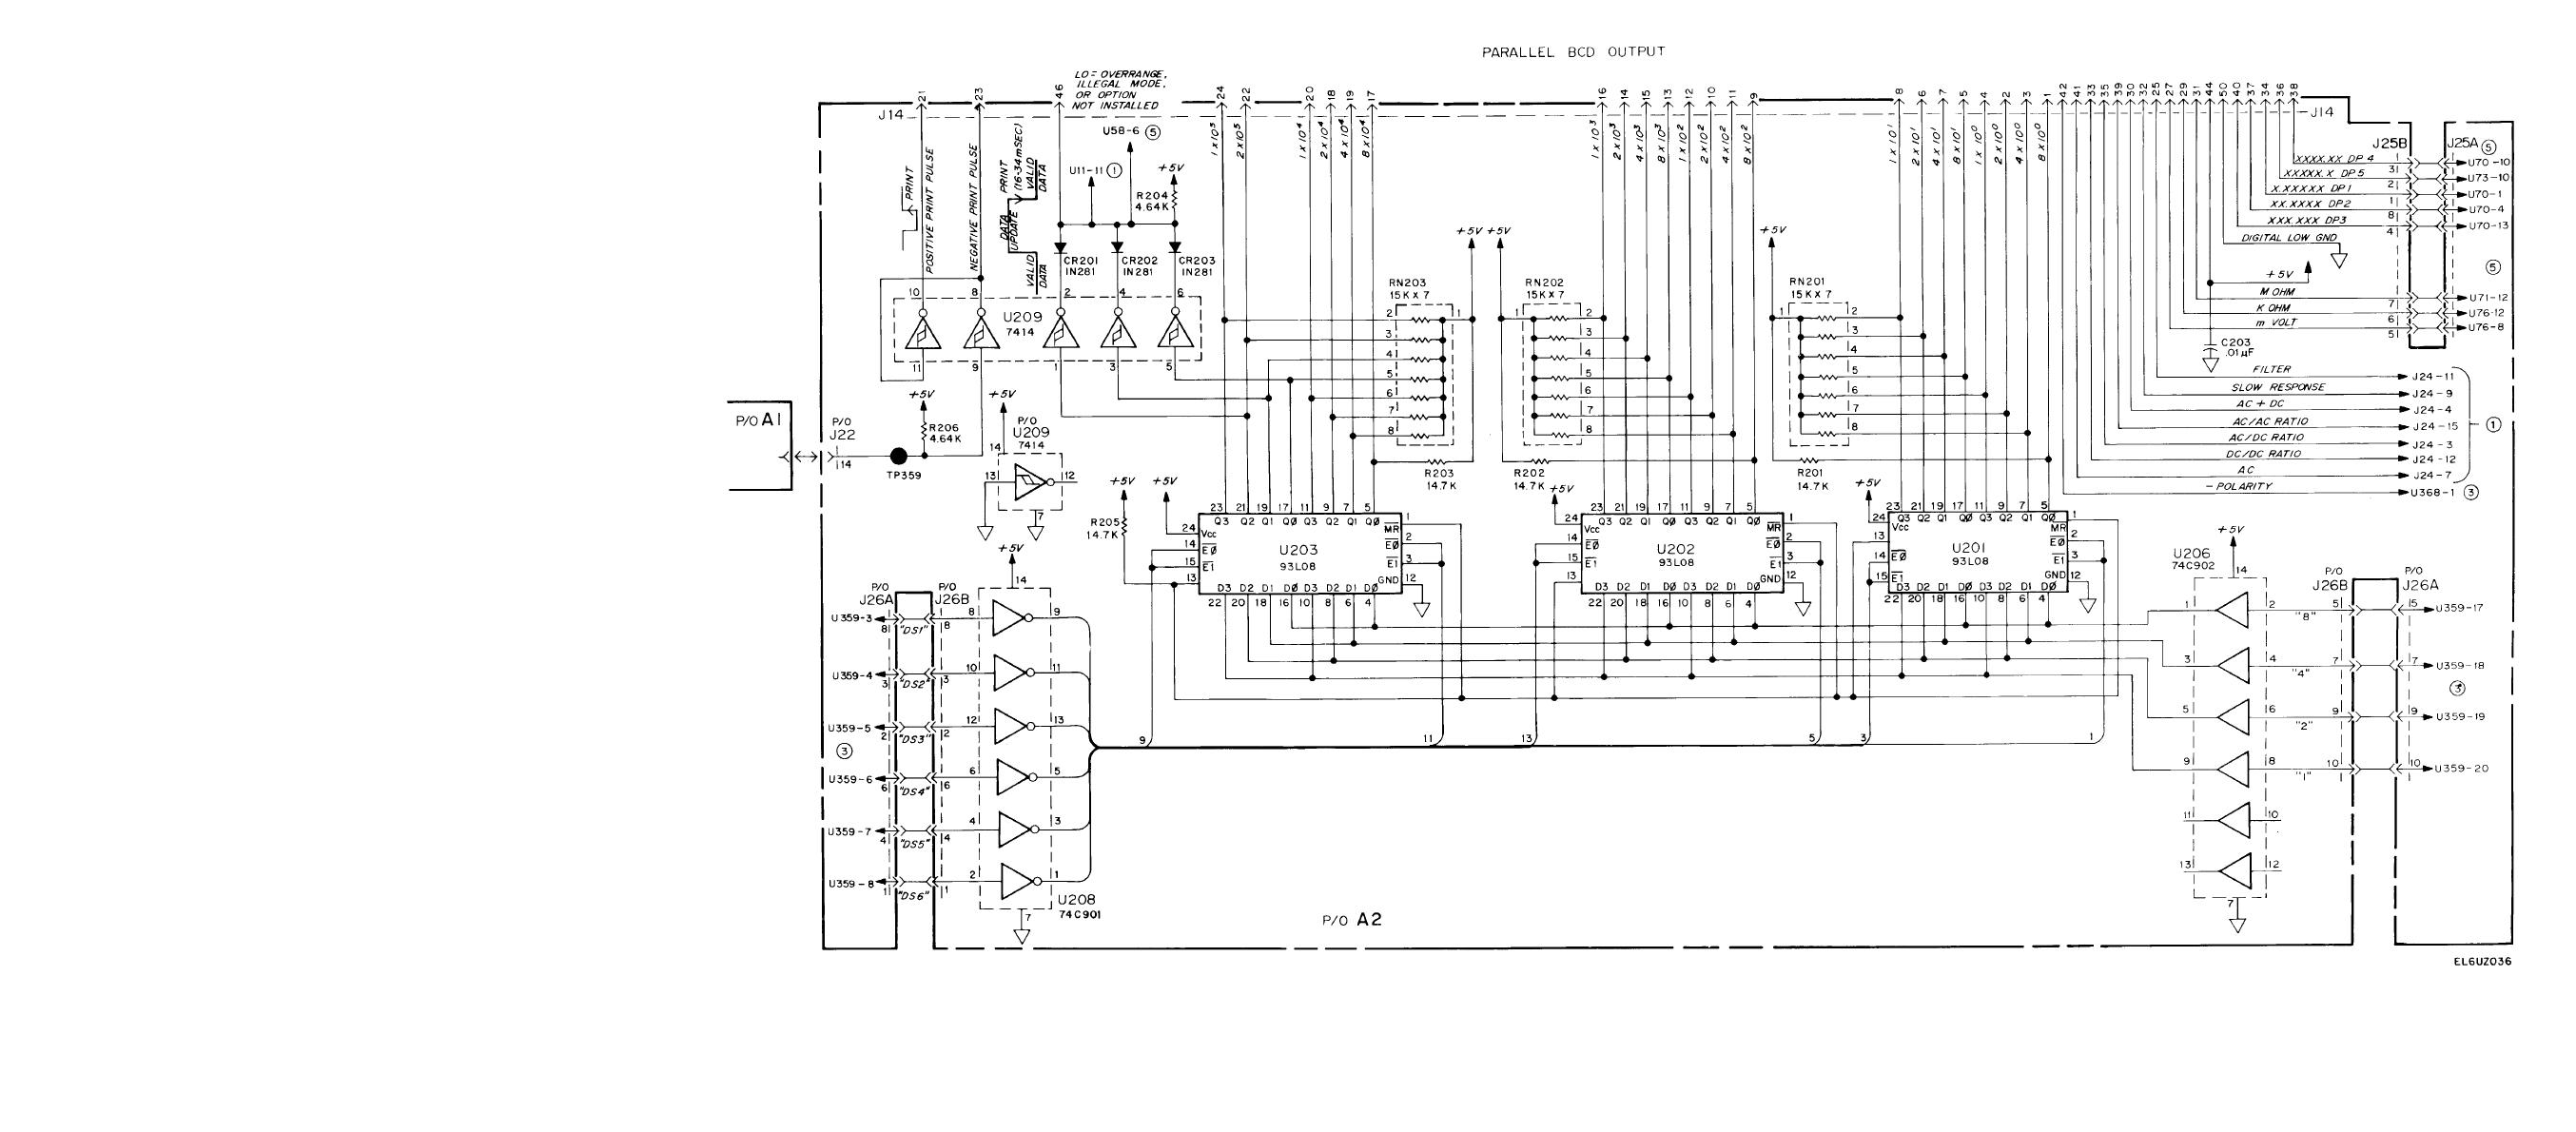 Results Page 174 About 6 Building Blocks Searching Circuits At Relay Circuit Automation Nextgr Parallel Bcd Output